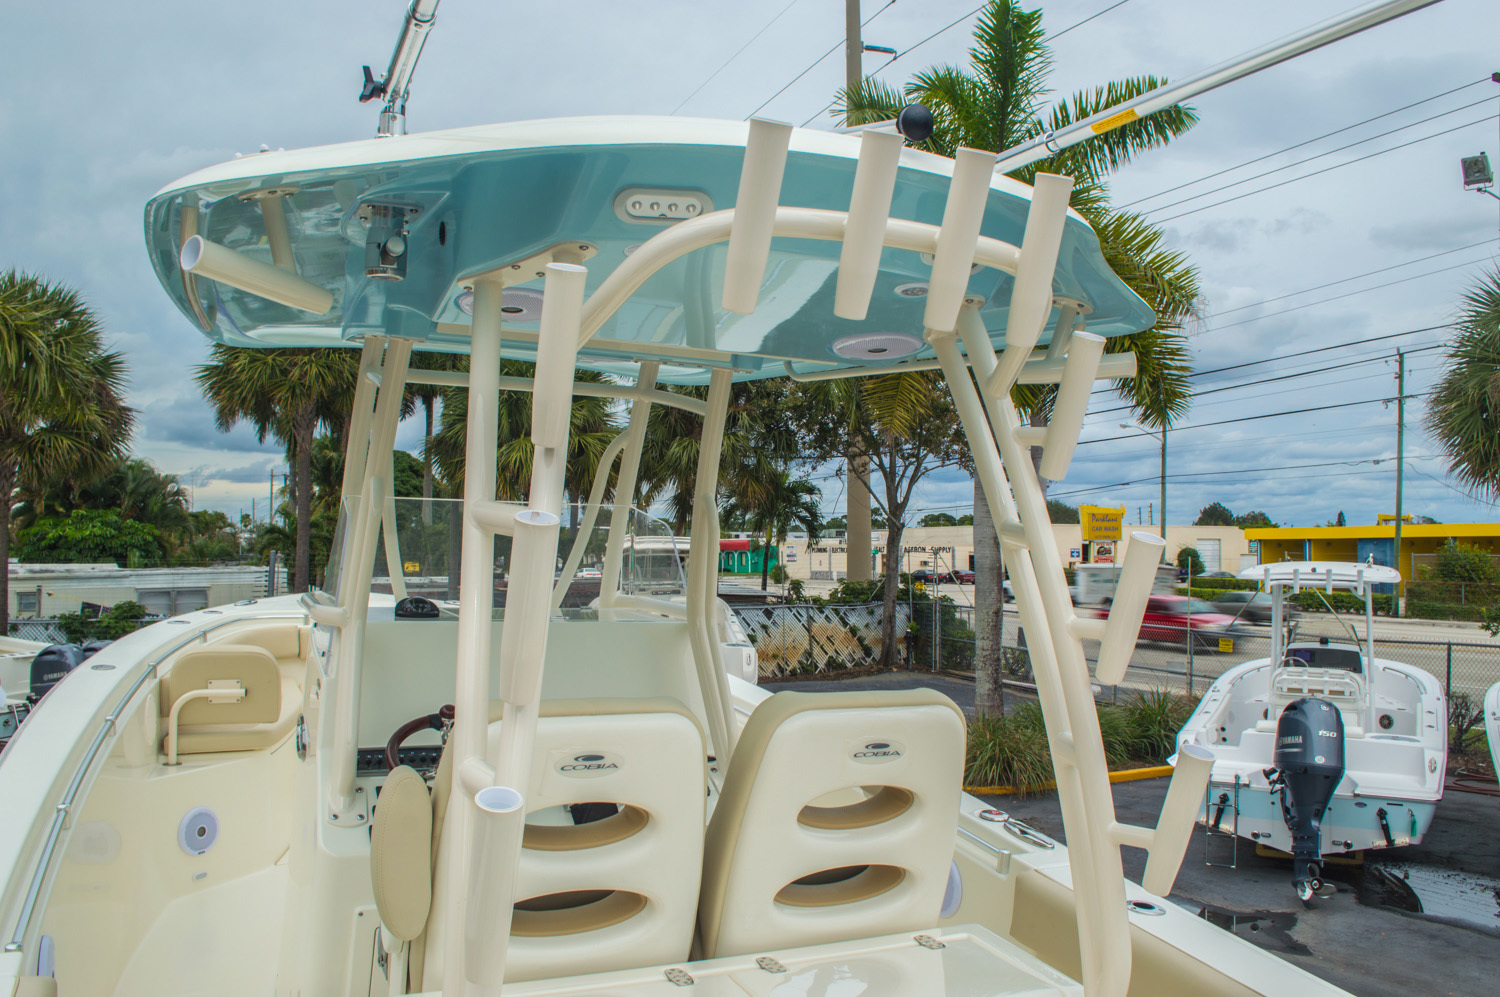 Thumbnail 31 for New 2016 Cobia 296 Center Console boat for sale in Vero Beach, FL